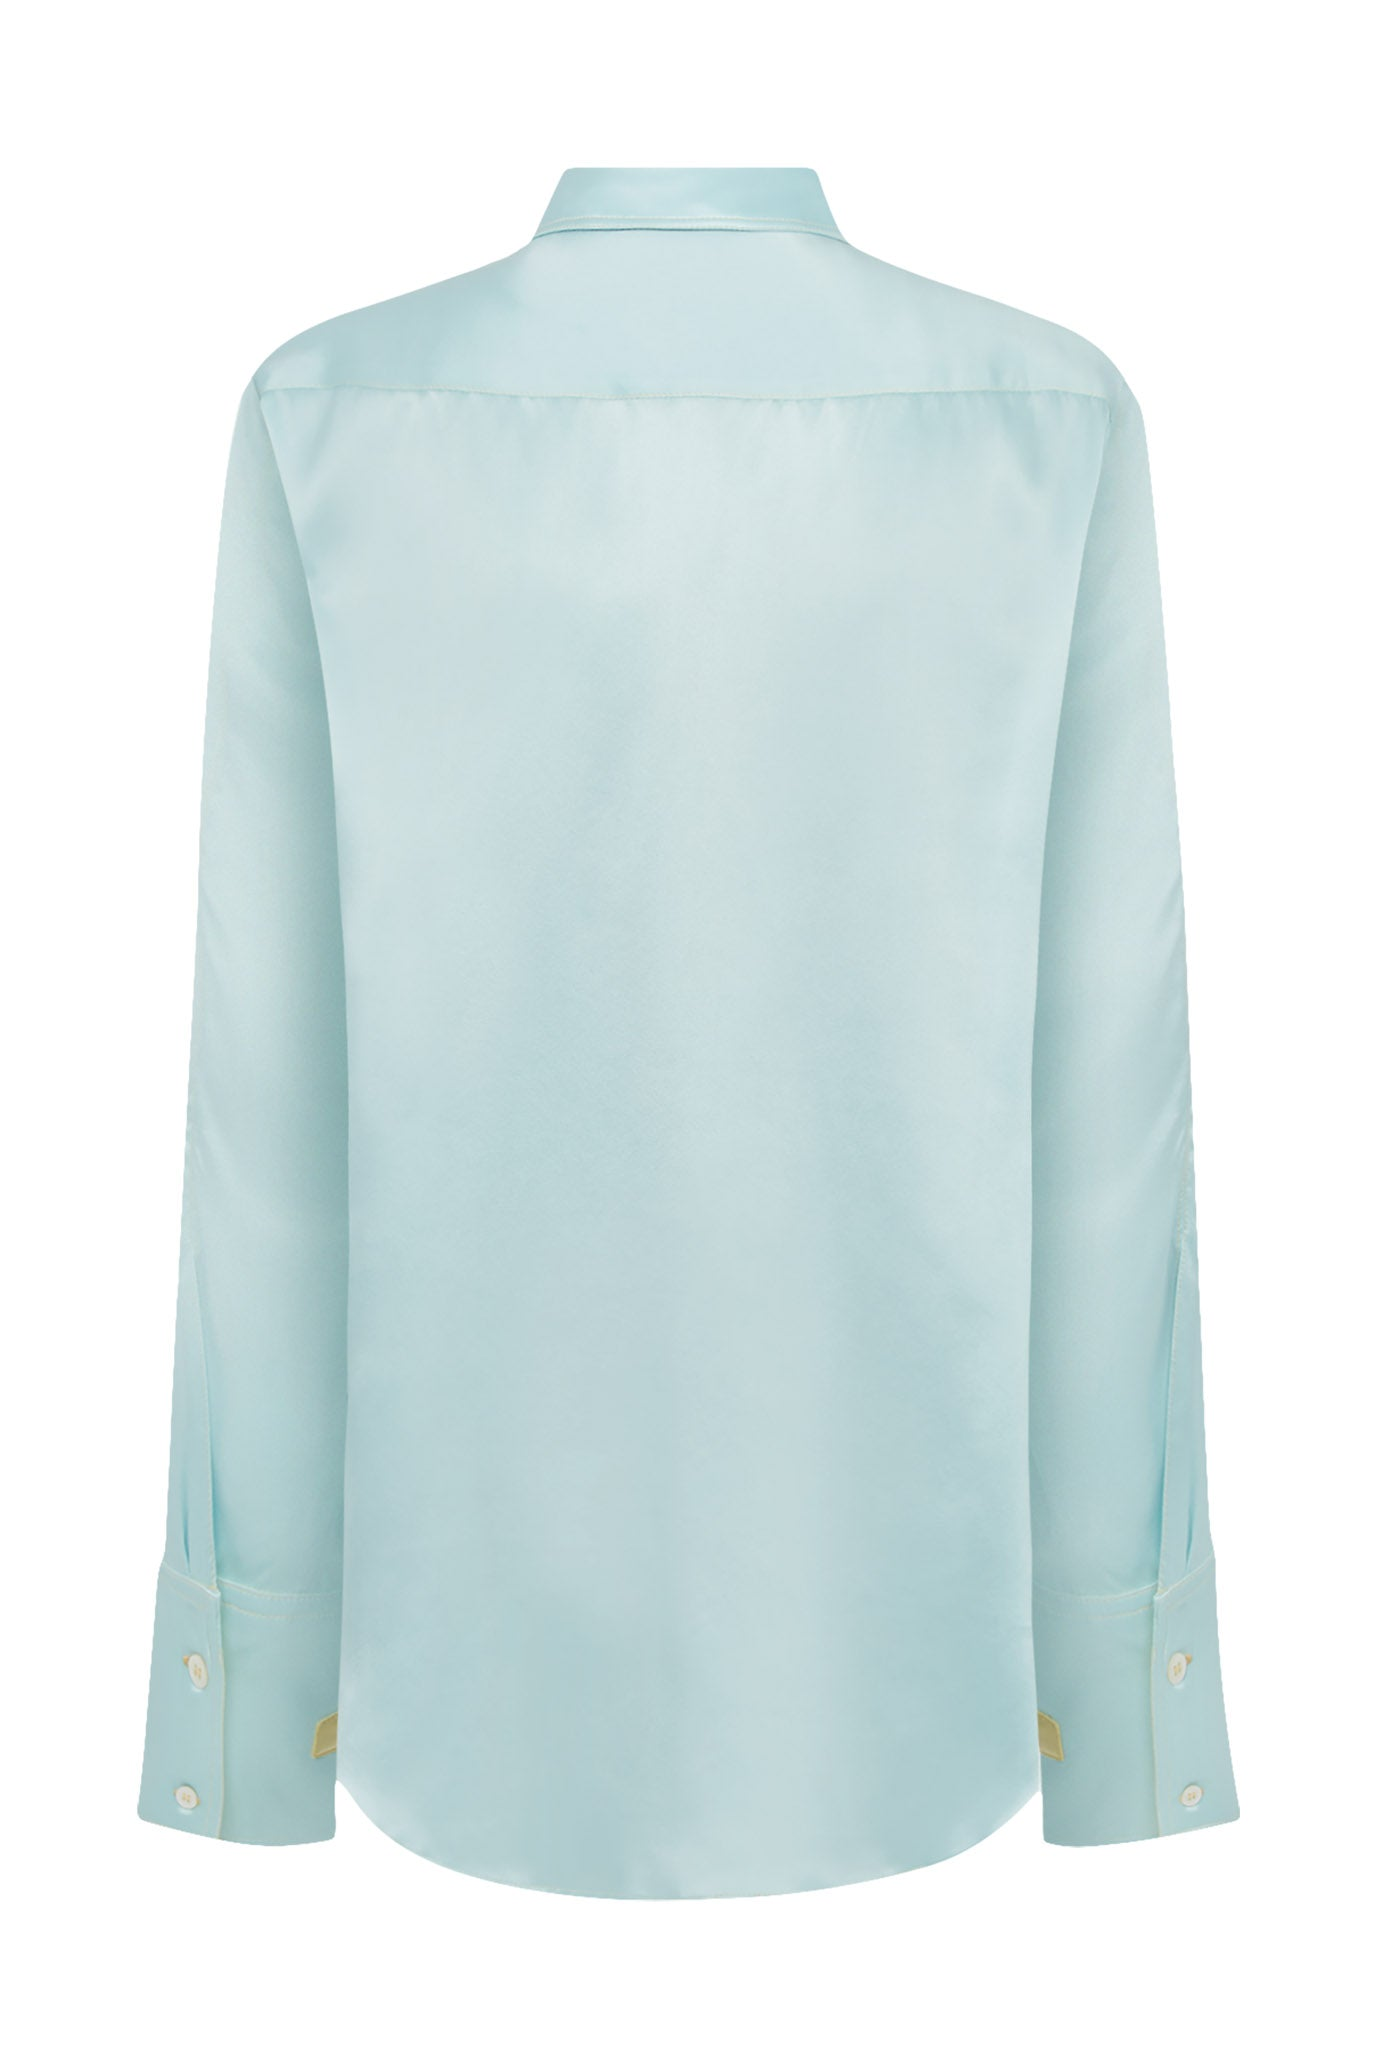 The Oversized Shirt - Spearmint & Buttermilk Yellow Silk - SERENA BUTE